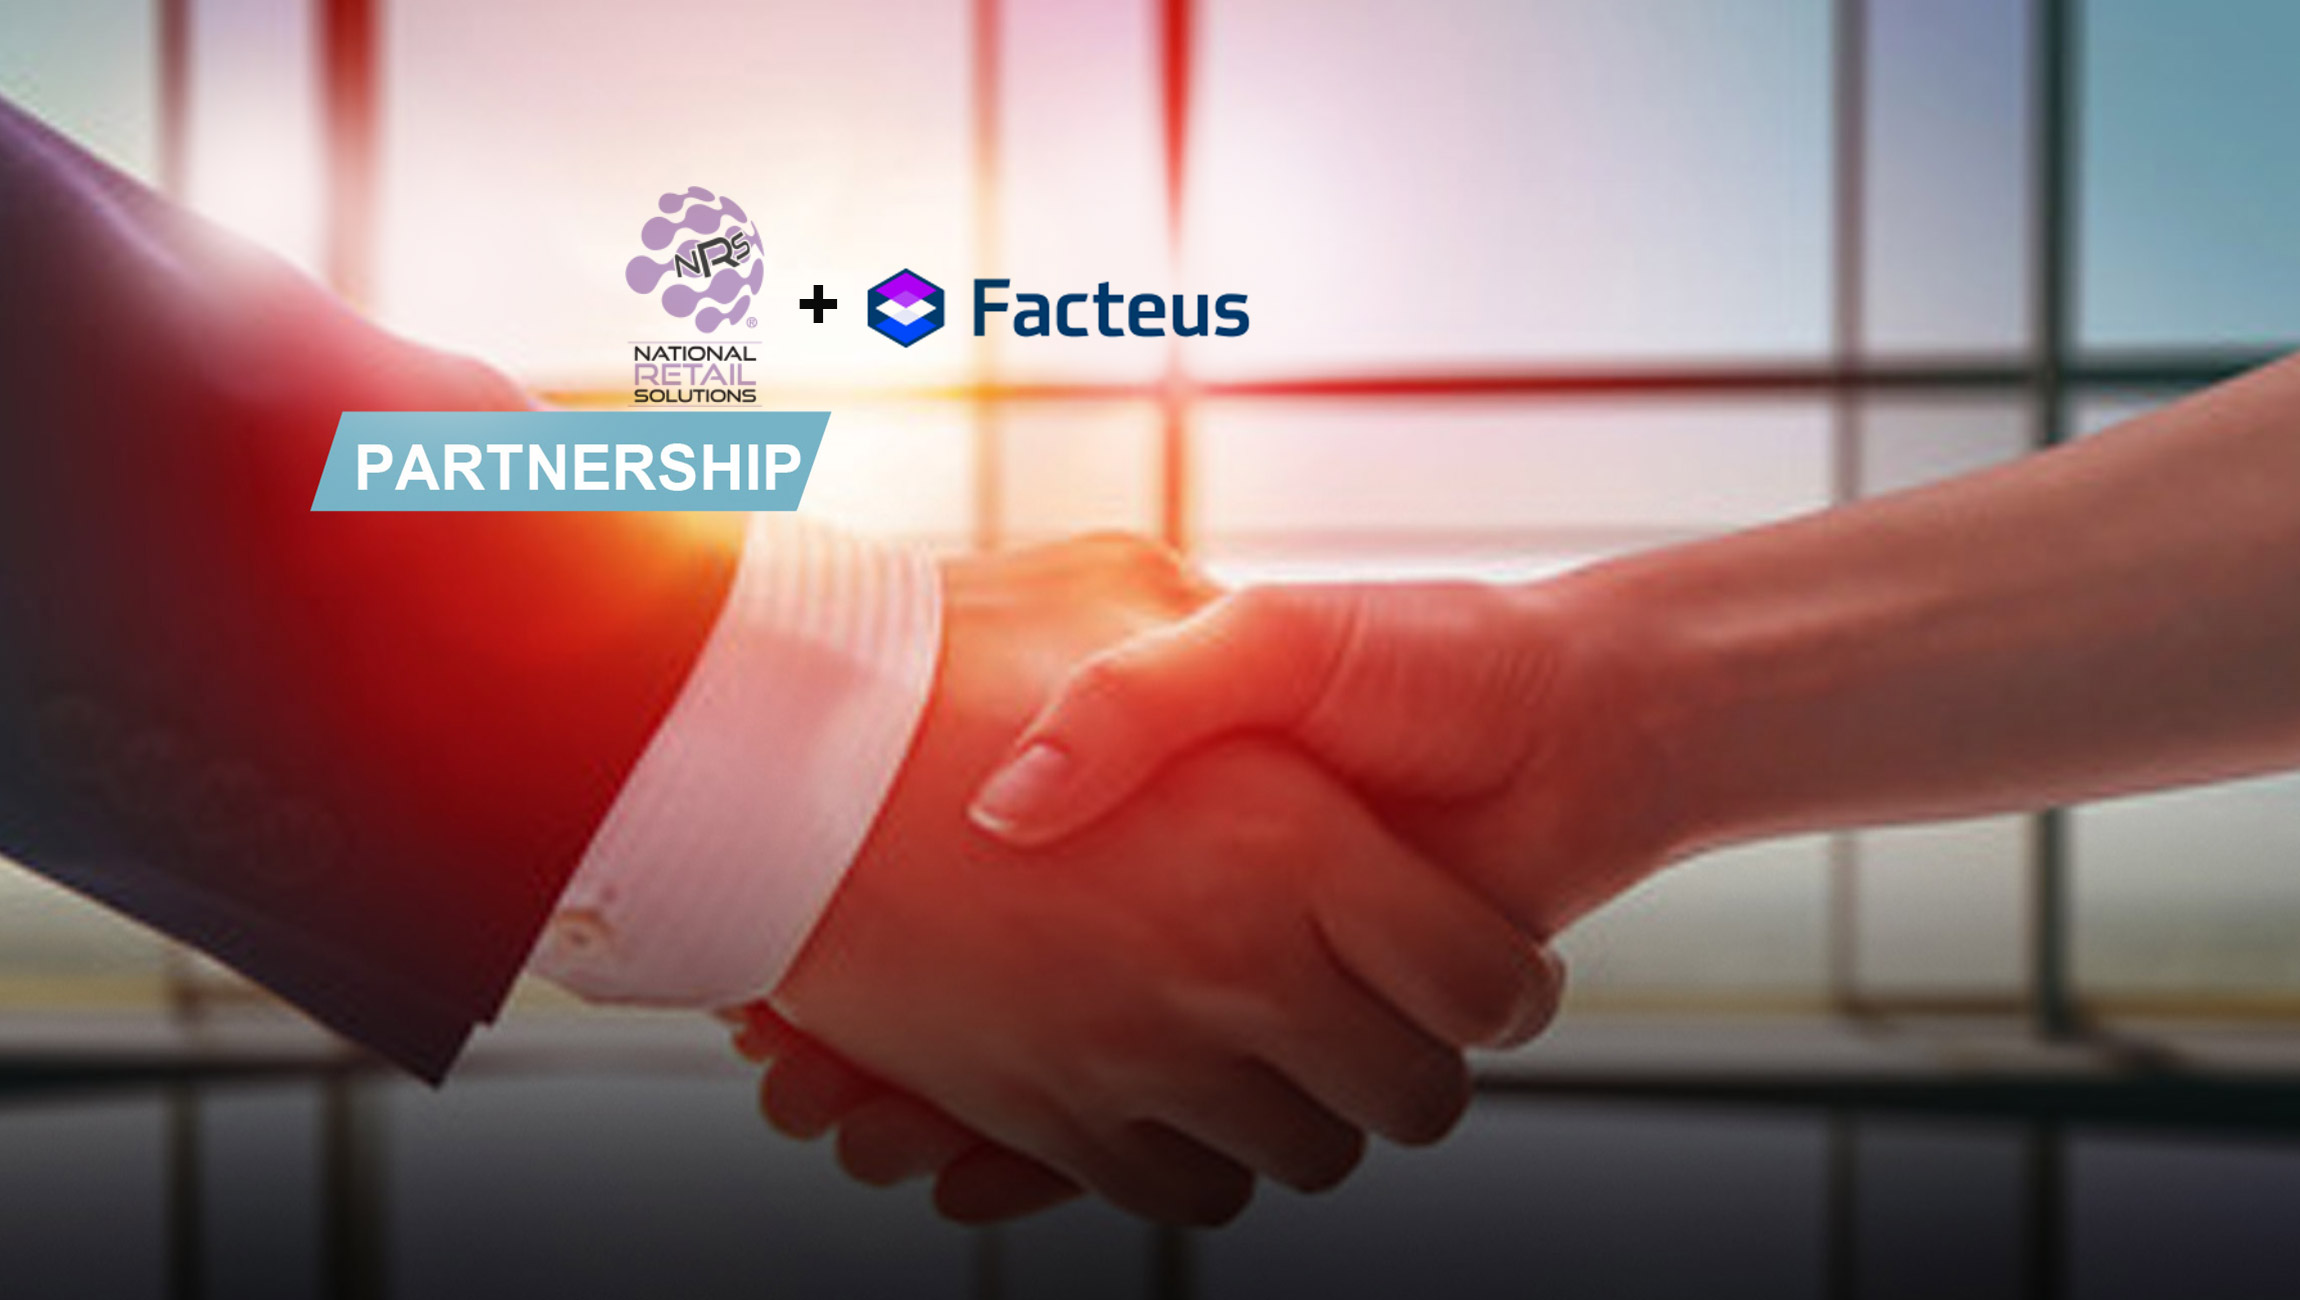 NRS Partners With Facteus To Unlock The Value Of Point-of-Sale Transaction Data